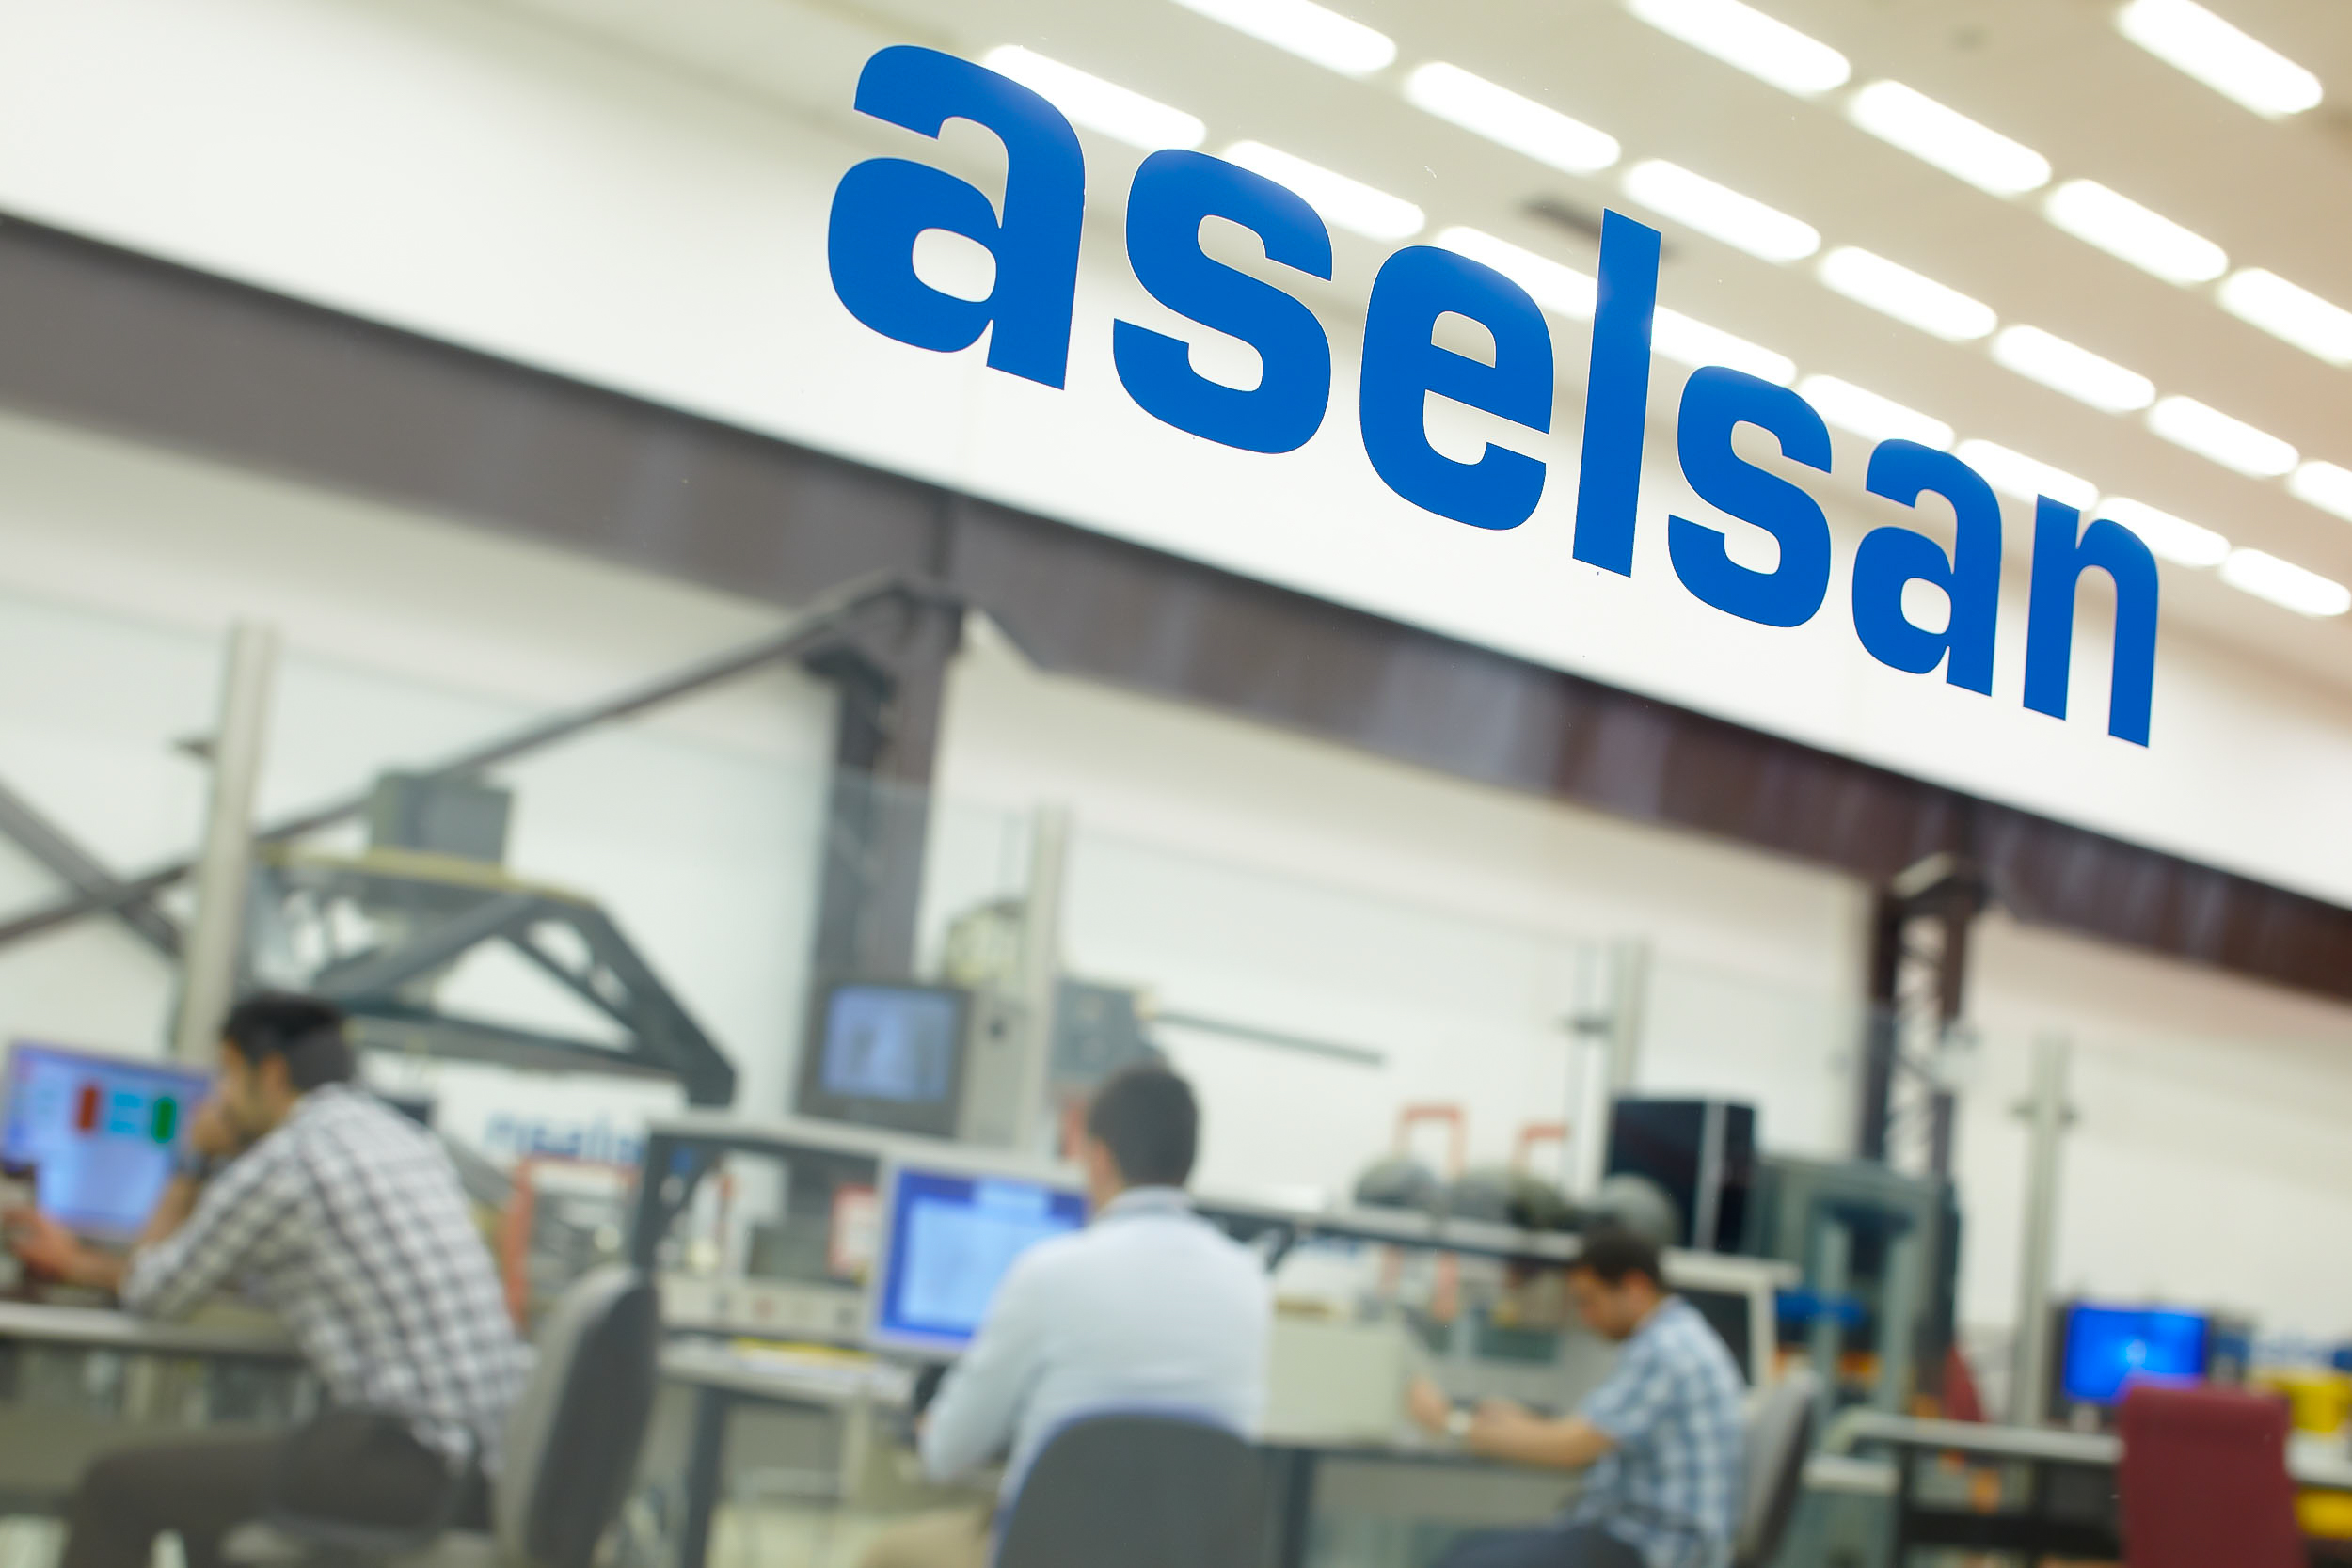 Aselsan and STM - Contract Inked for an Electronic Warfare System